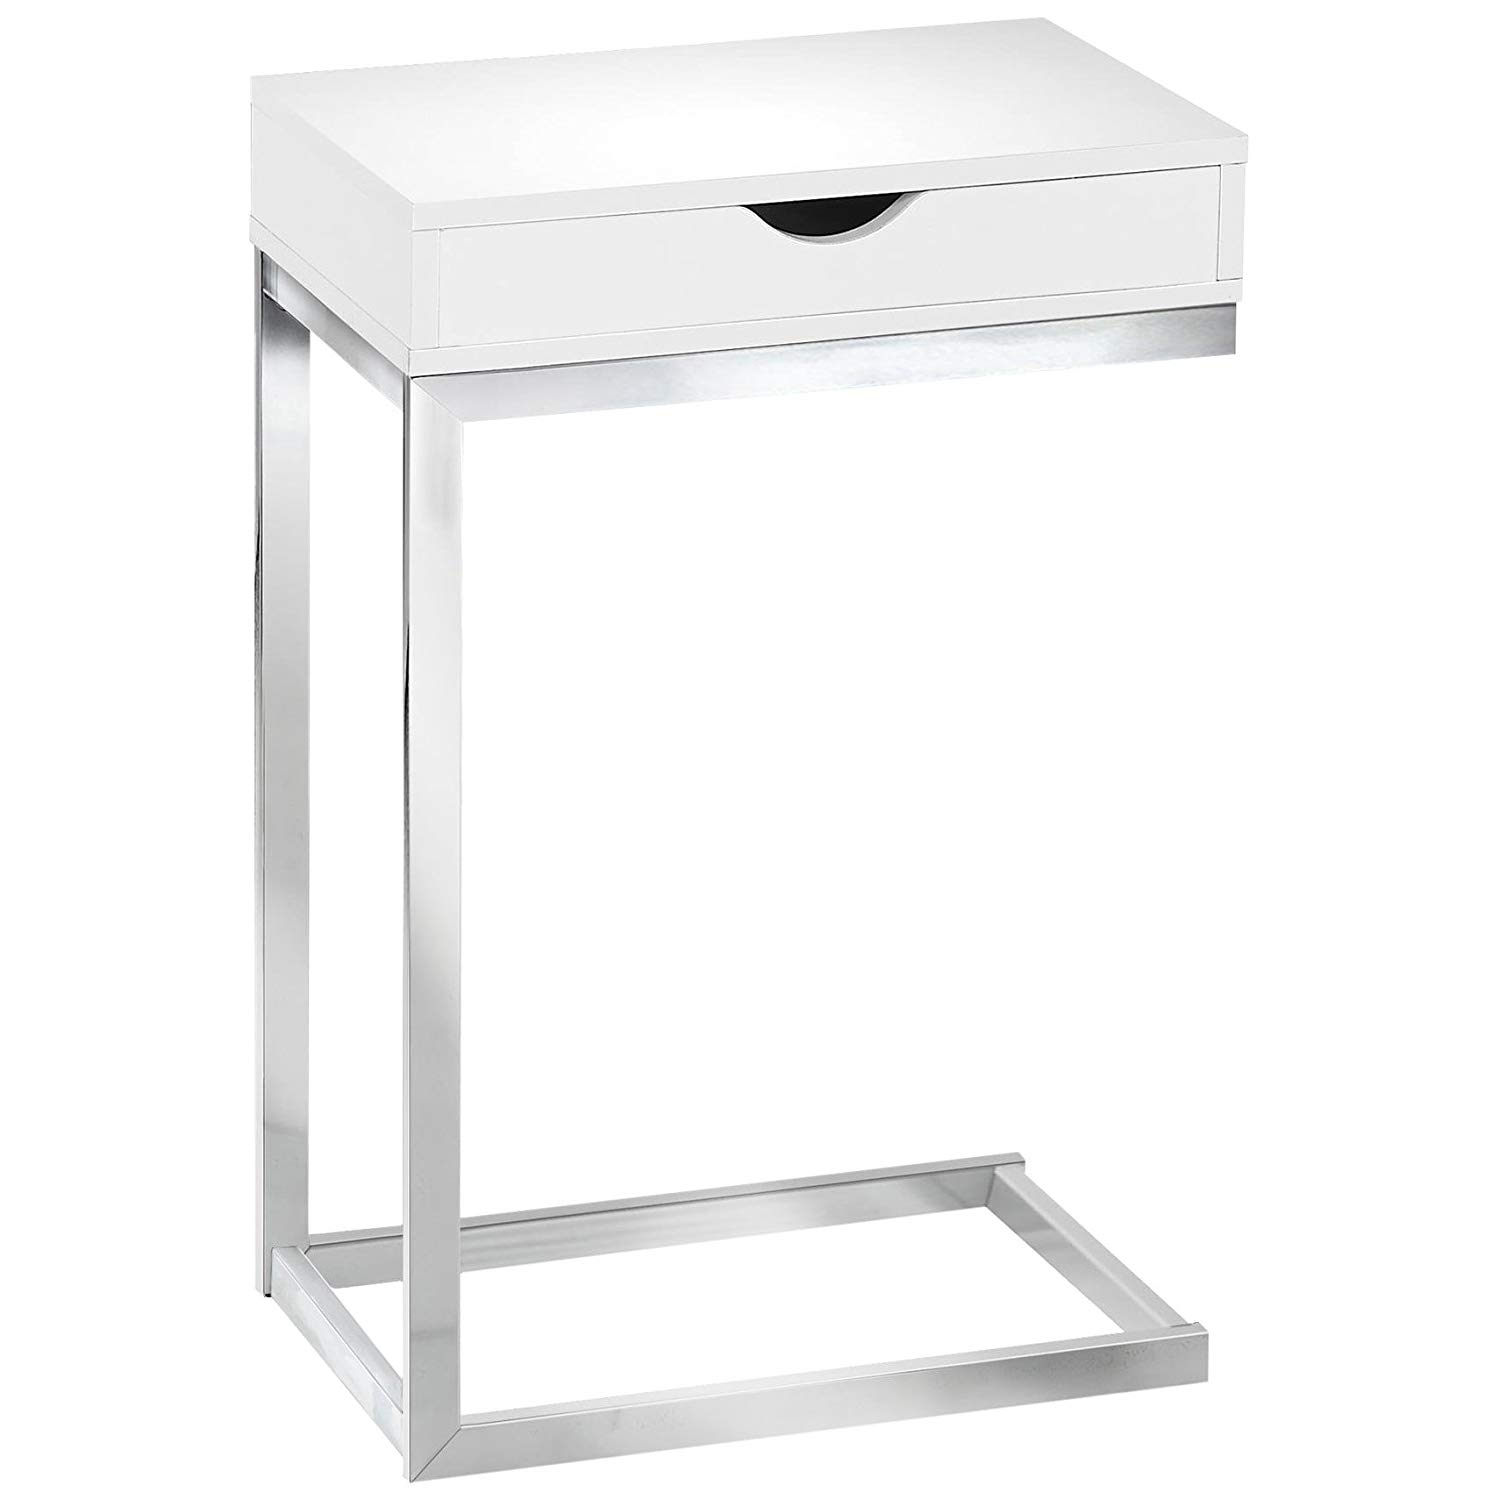 monarch specialties accent table with drawer chrome metal glass console sofa shelf glossy white kitchen dining corner end round concrete living room wall clock counter height